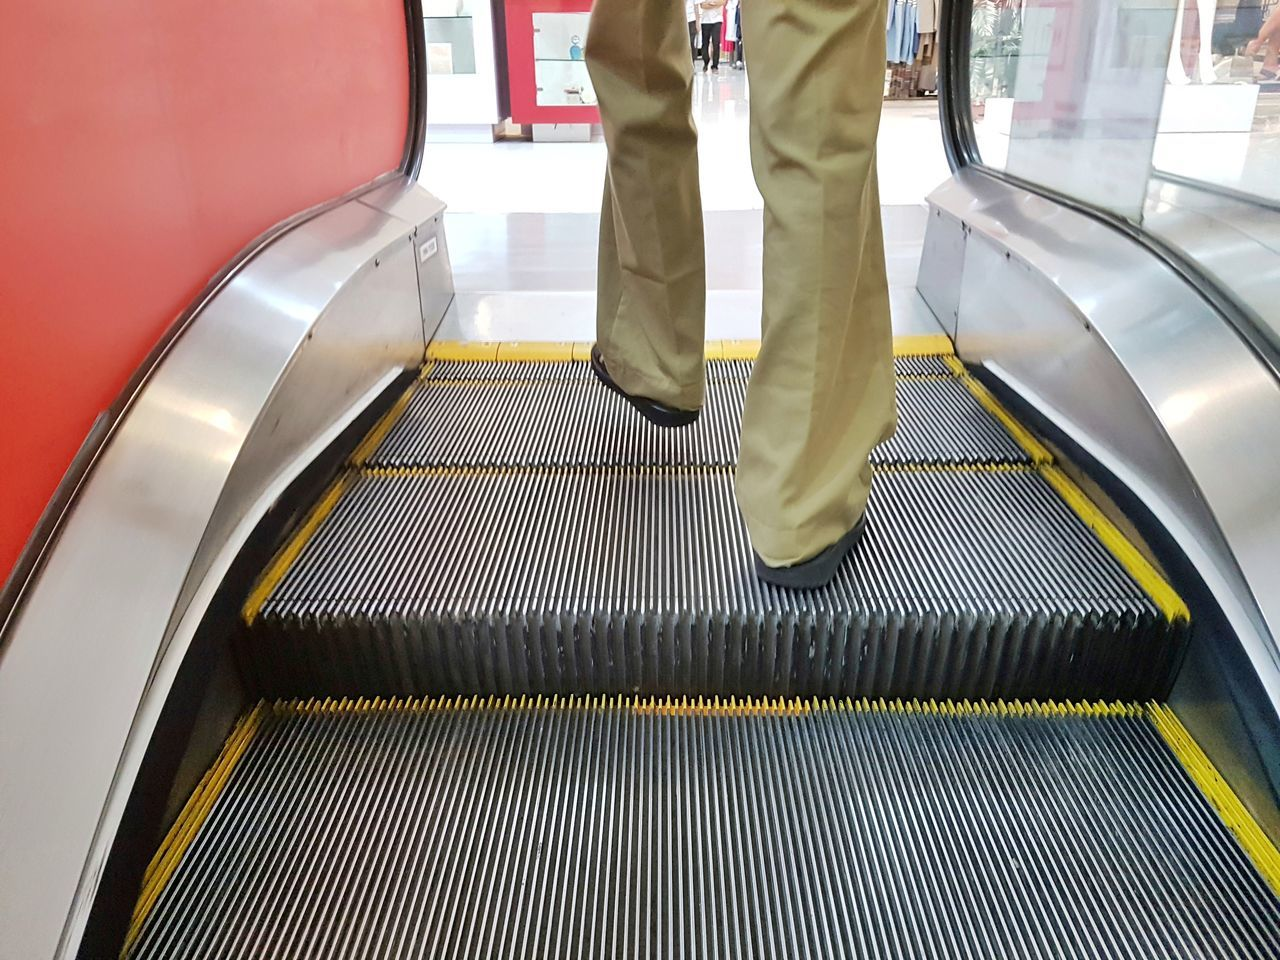 escalator, transportation, convenience, moving walkway, staircase, steps and staircases, indoors, real people, technology, one person, lifestyles, railing, futuristic, human leg, modern, standing, men, human body part, low section, body part